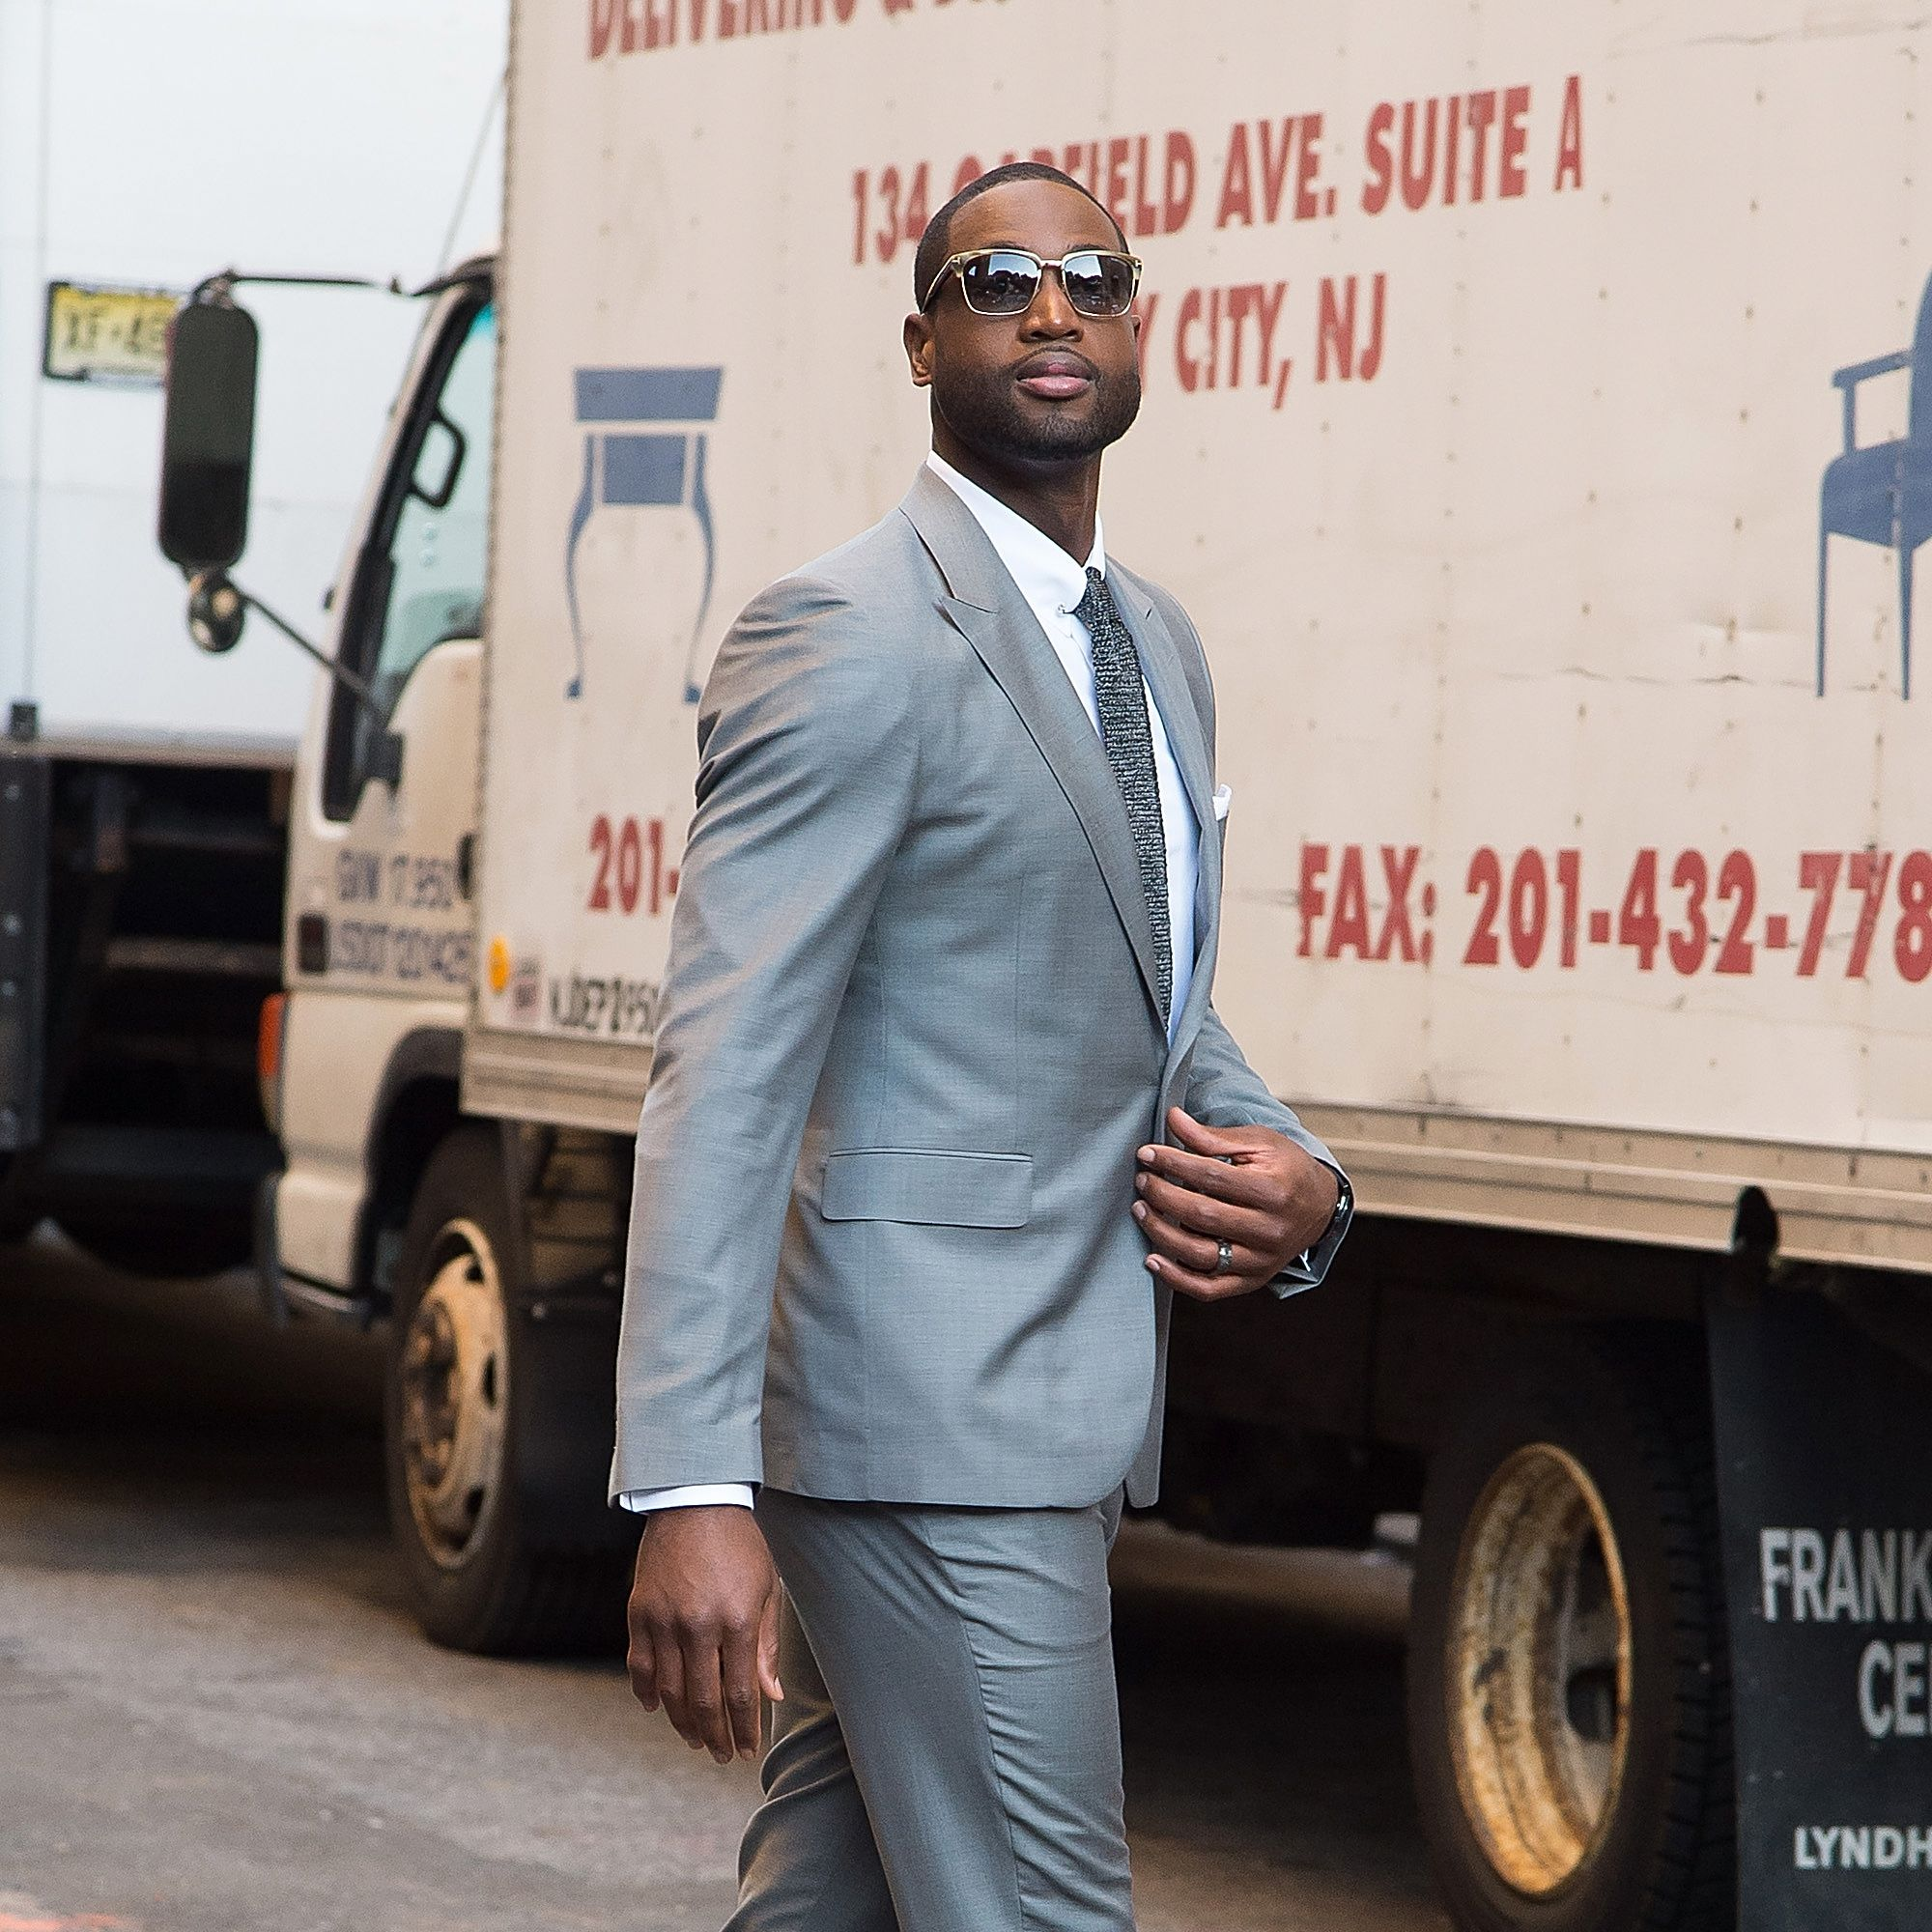 <p><strong>Team:</strong> Miami Heat</p><p><strong>Position:</strong> Guard </p><p><strong>Number:</strong> 3</p><p><strong>Style Stats:</strong> Wade masters the art of balance, pairing a  red-carpet-worthy suit (he <em>is</em> Gabrielle Union's husband, after all) with street-friendly sneakers.</p>